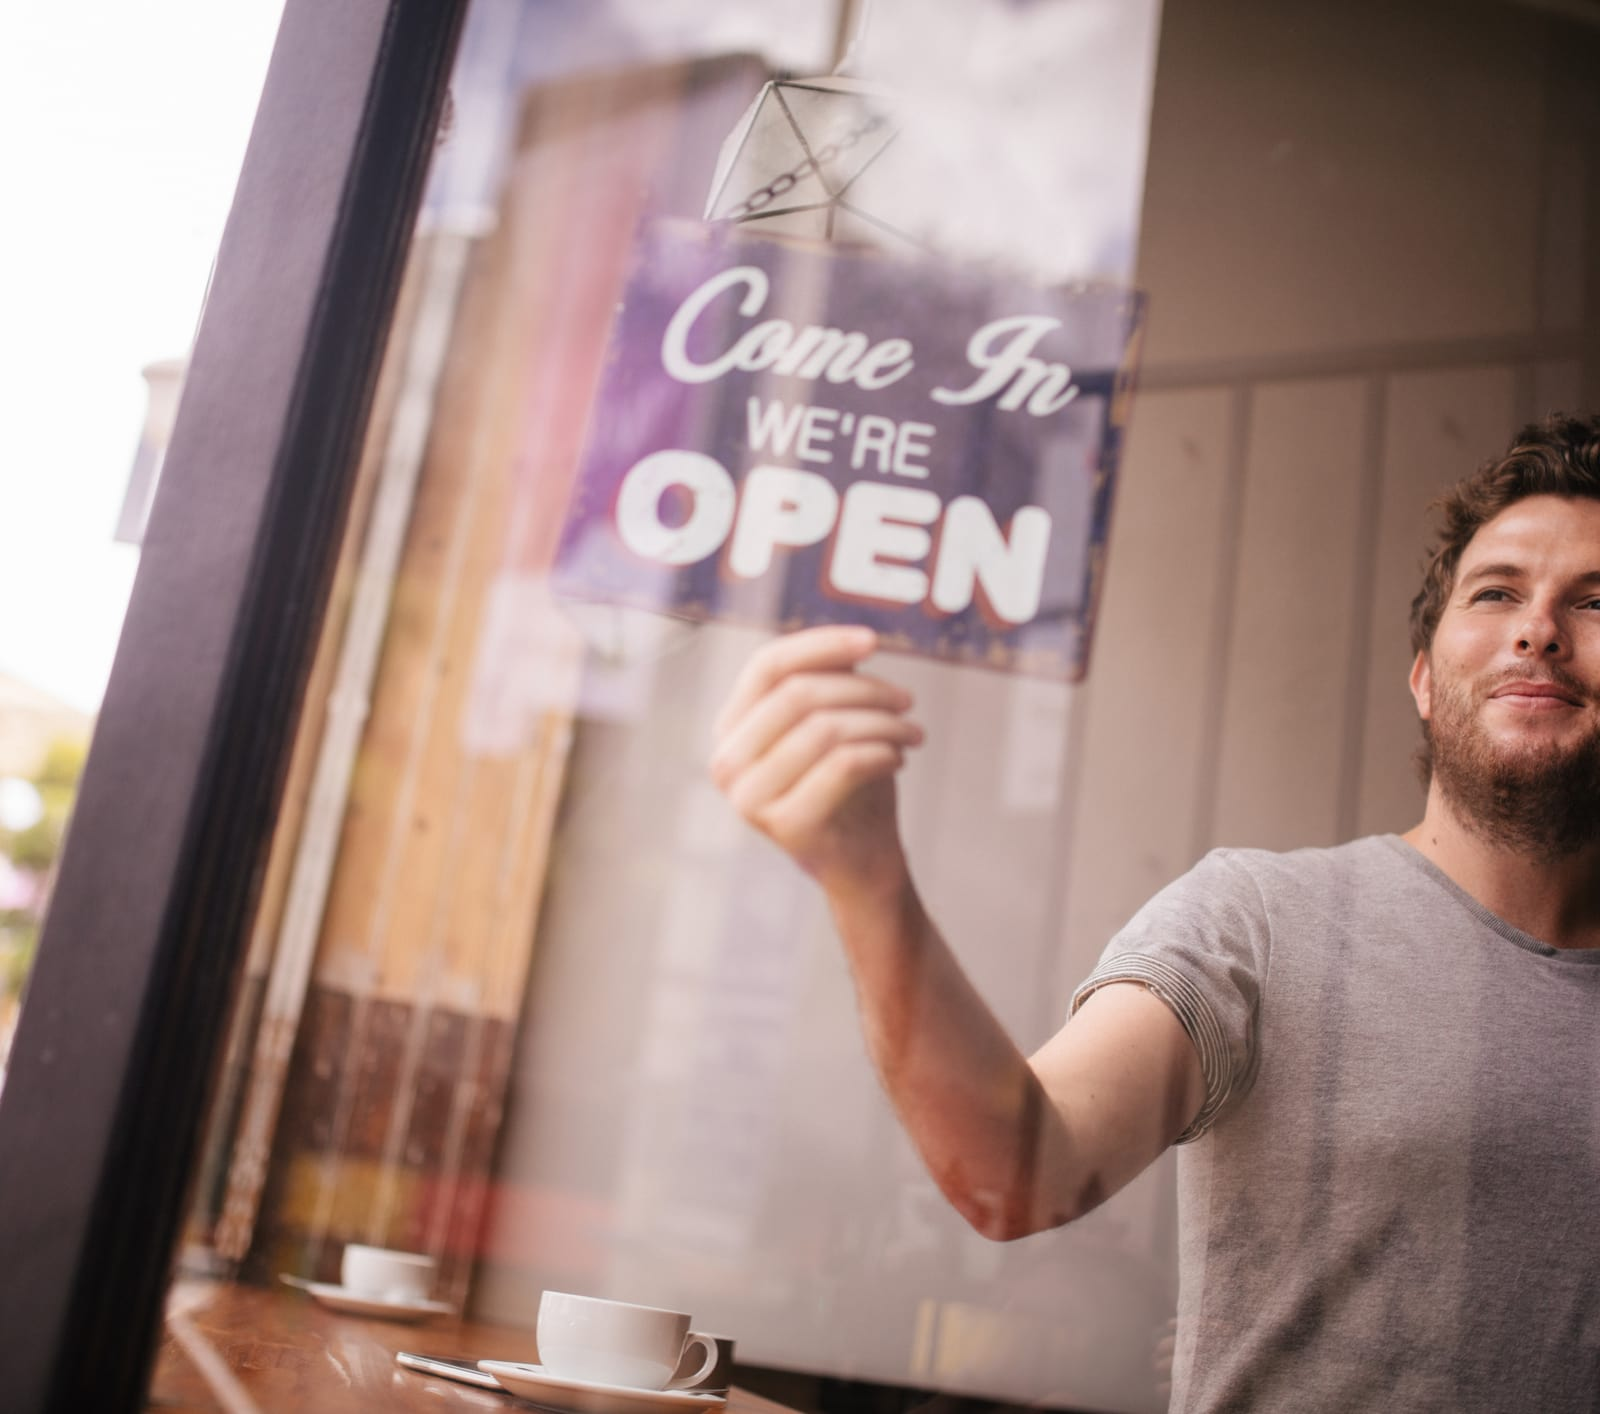 Small Business Startup Loans of 2019: The 8 Best Options